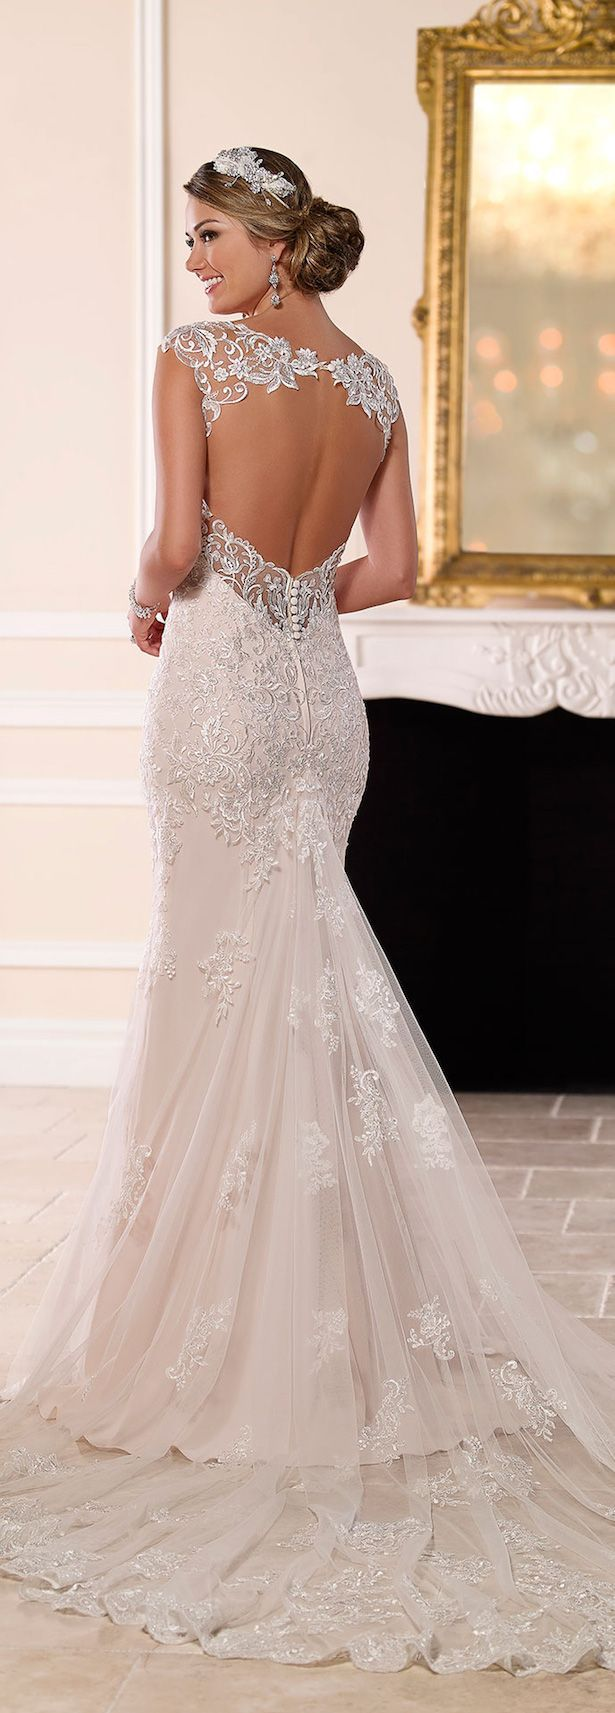 Goodliness wedding dresses designer with sleeves zuhair murad